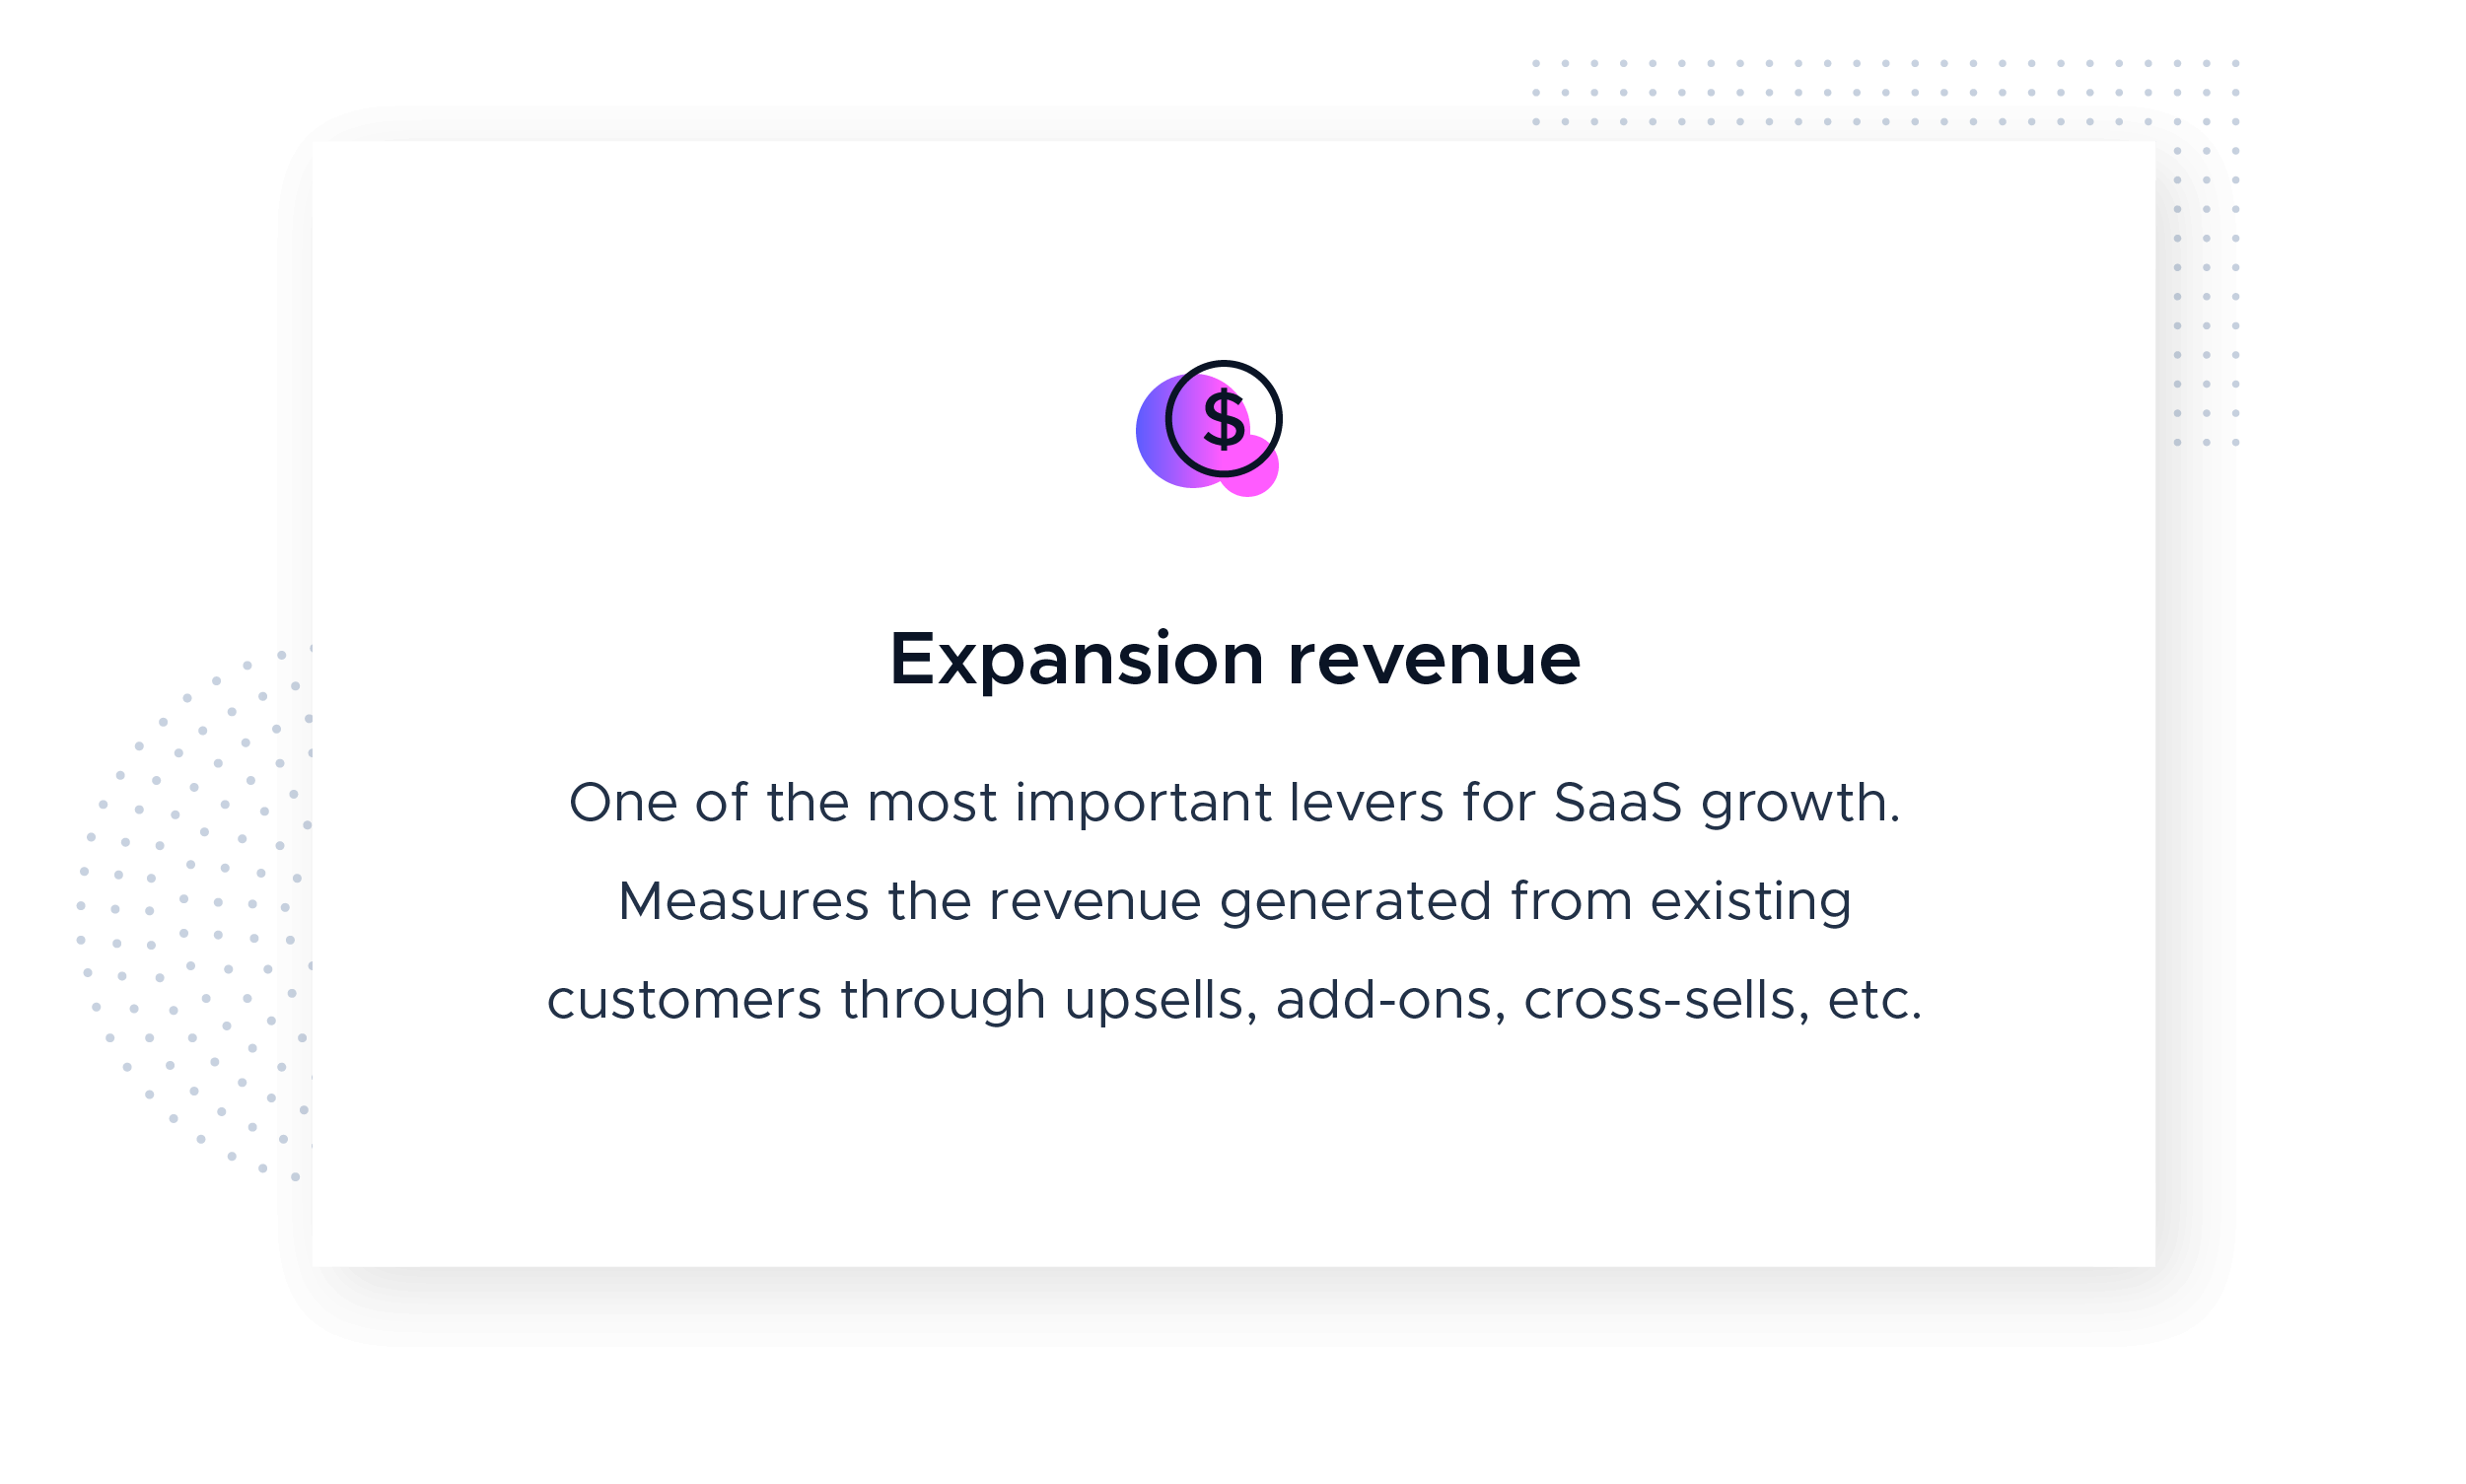 Expansion revenue definition with icon from the Product-Led Growth Collective. This image defines expansion revenue as one of the most important levers for SaaS growth. Measures the revenue generated from existing customers through upsells, add-ons, cross-sells, etc.